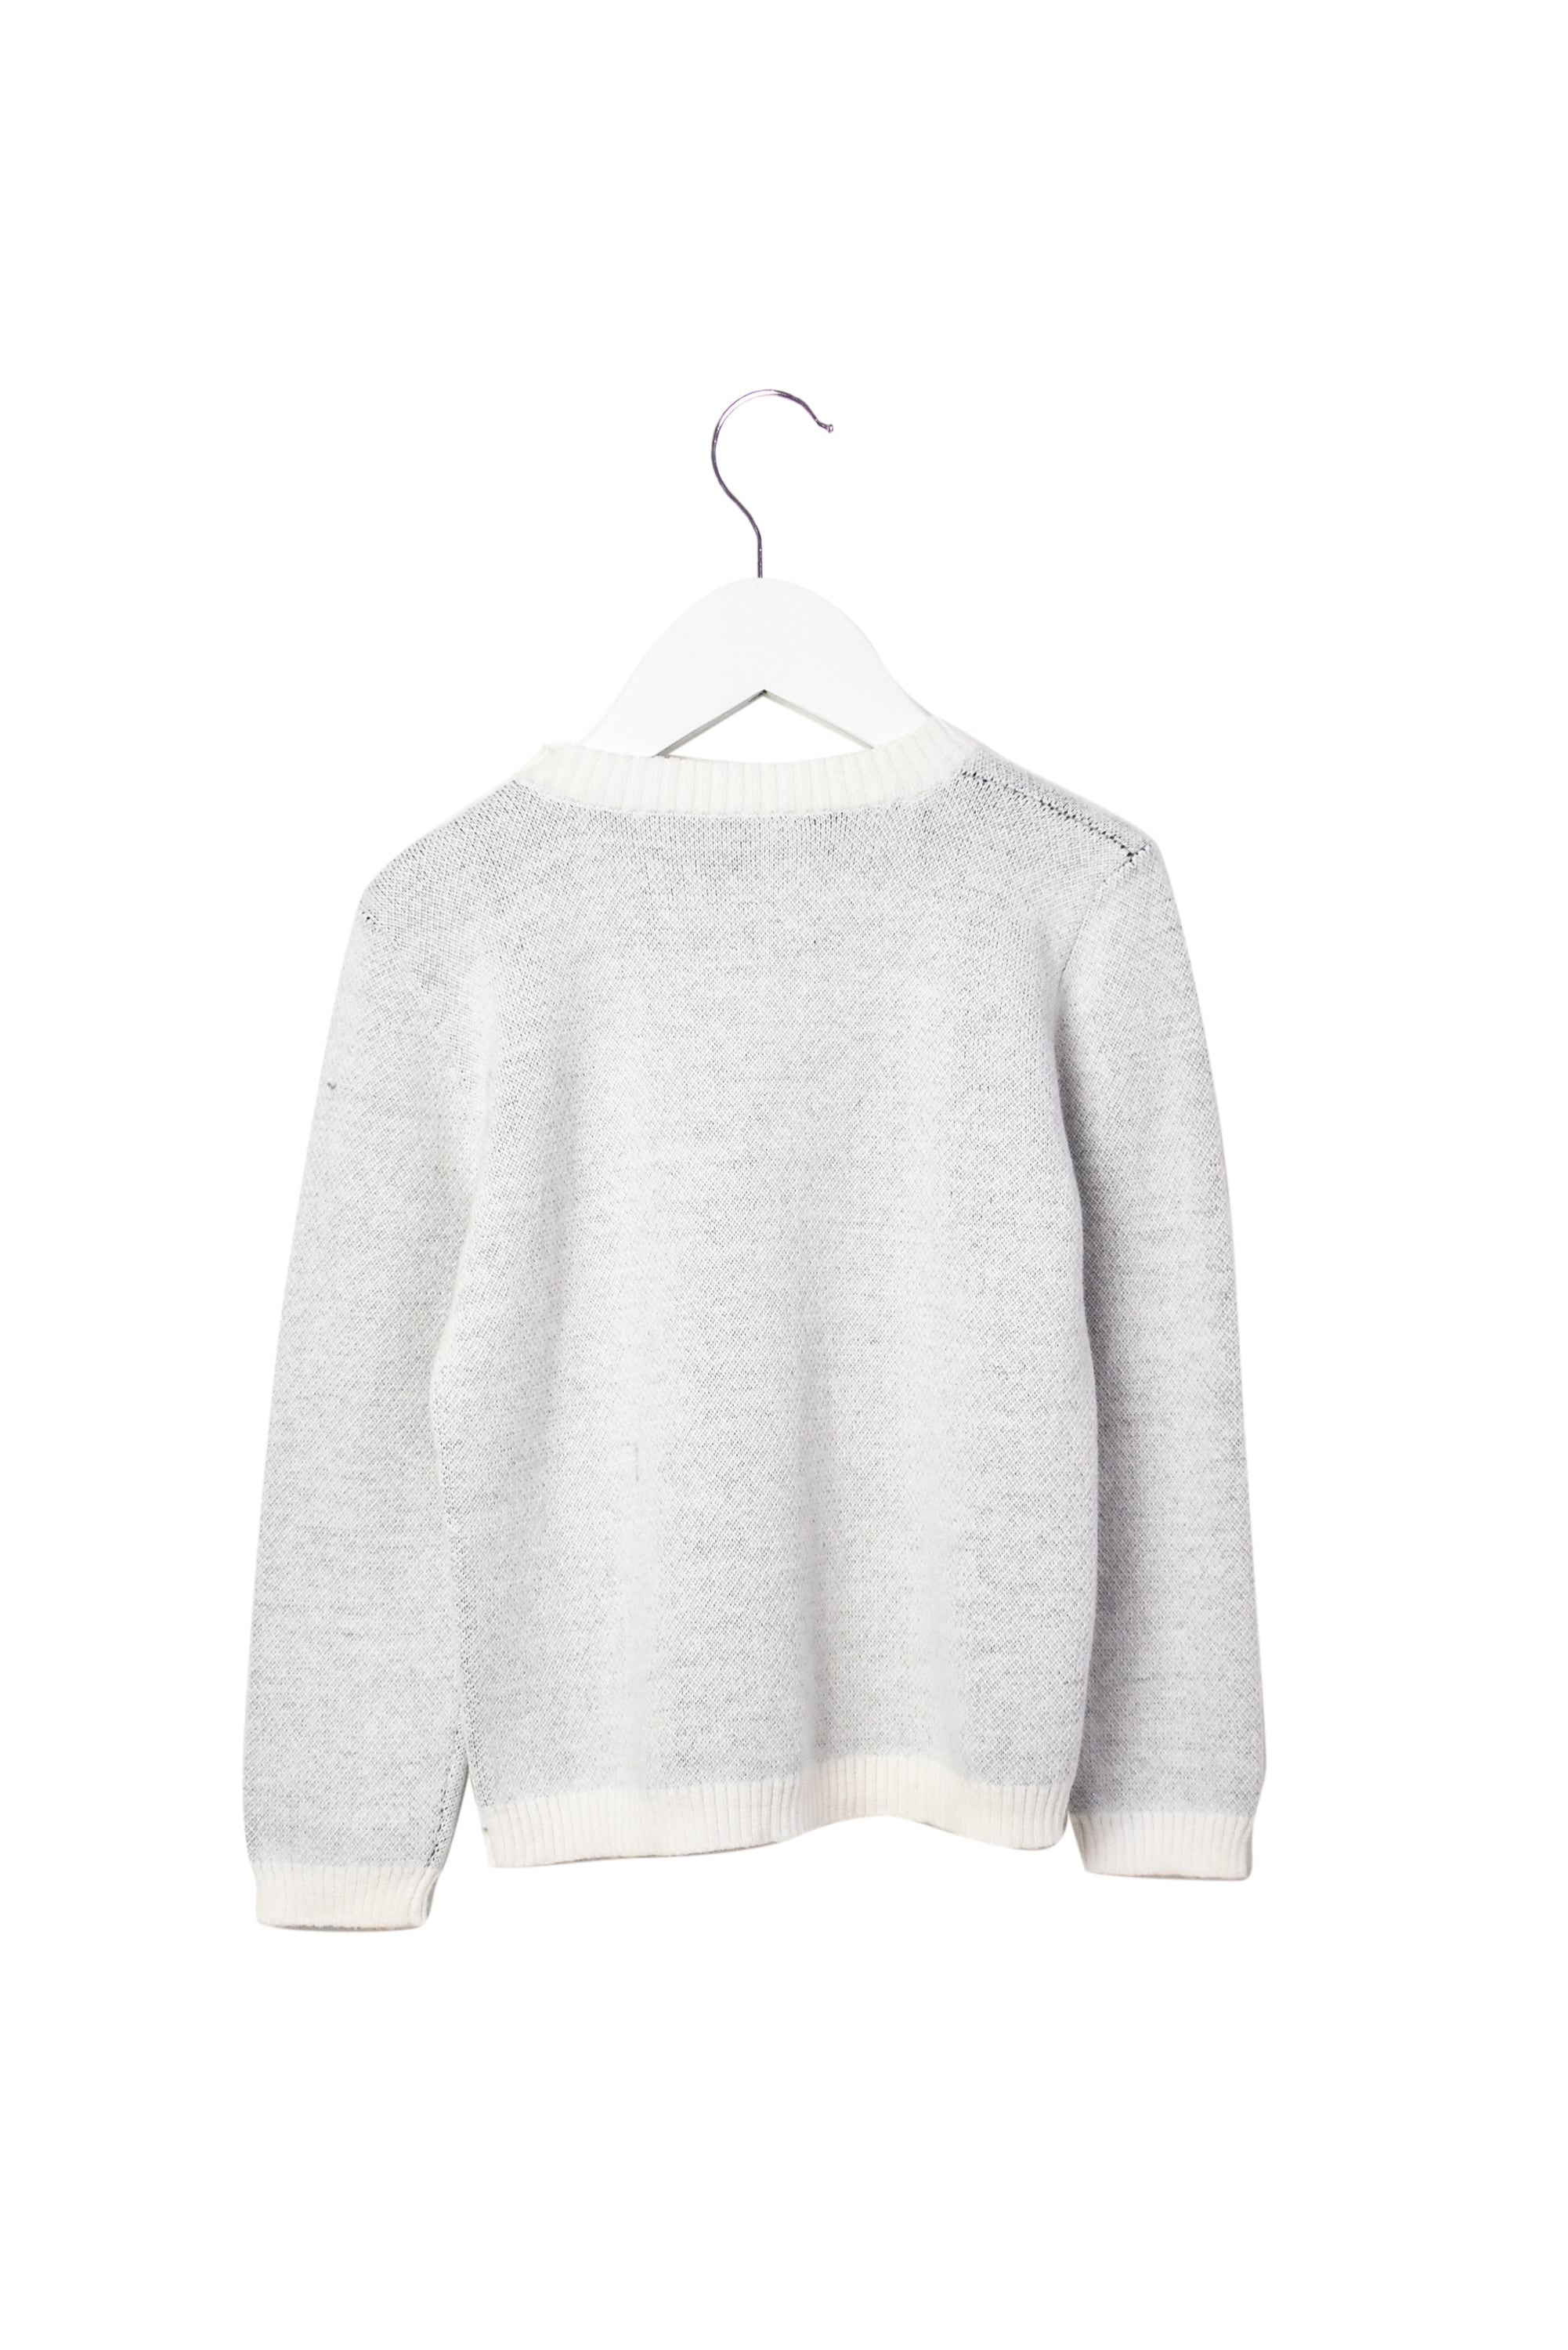 10007593 Atelier Child Kids~Sweater 4-5T at Retykle